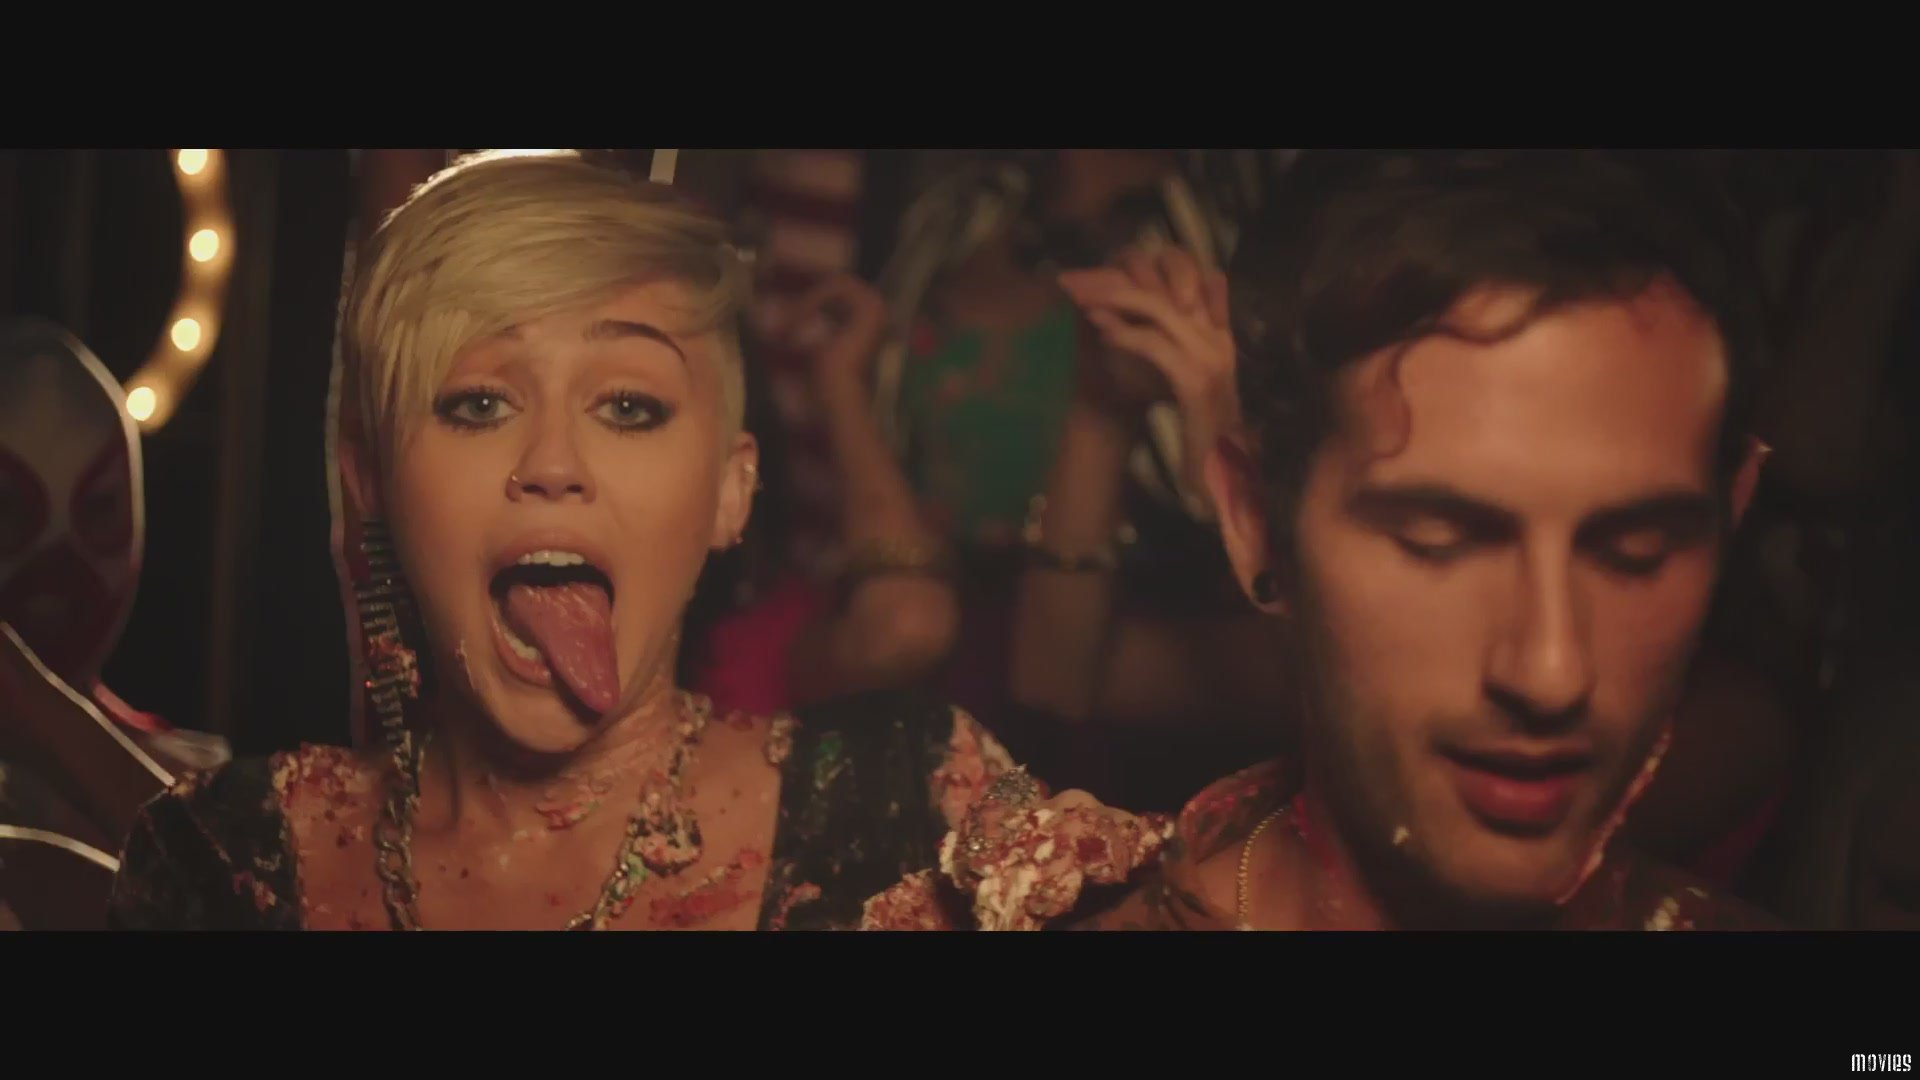 miley mature singles Miley cyrus' net worth has been skyrocketing ever since she appeared in the music and acting world see more about the fortune of this provocateur sensation.